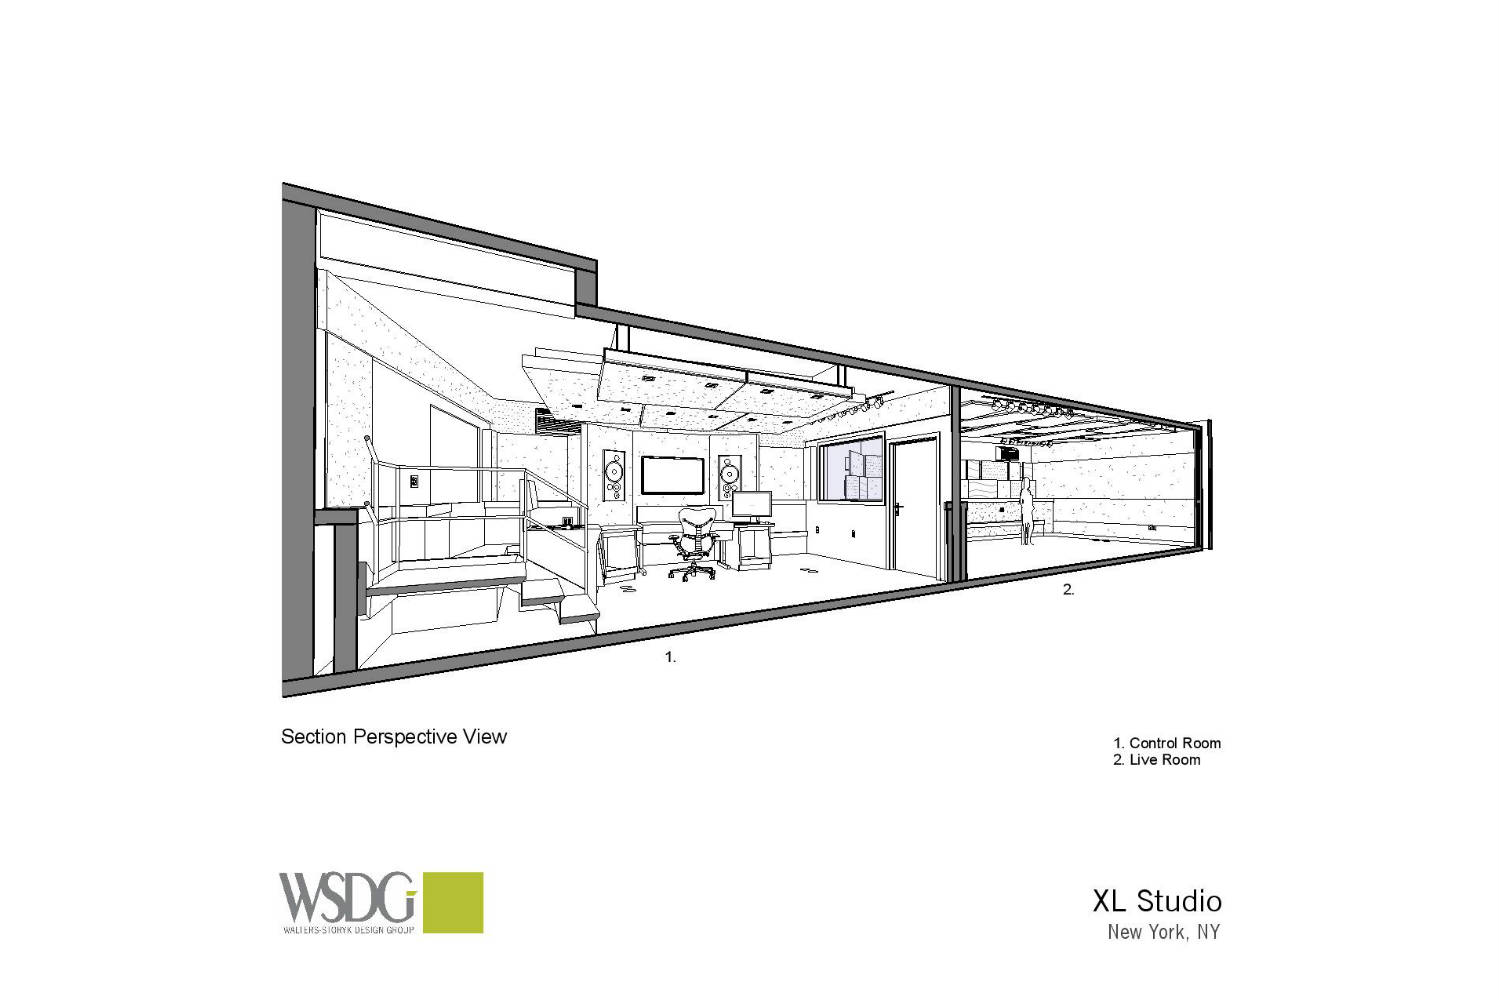 XL Studios in New York City designed by WSDG - Presentation Drawing 1